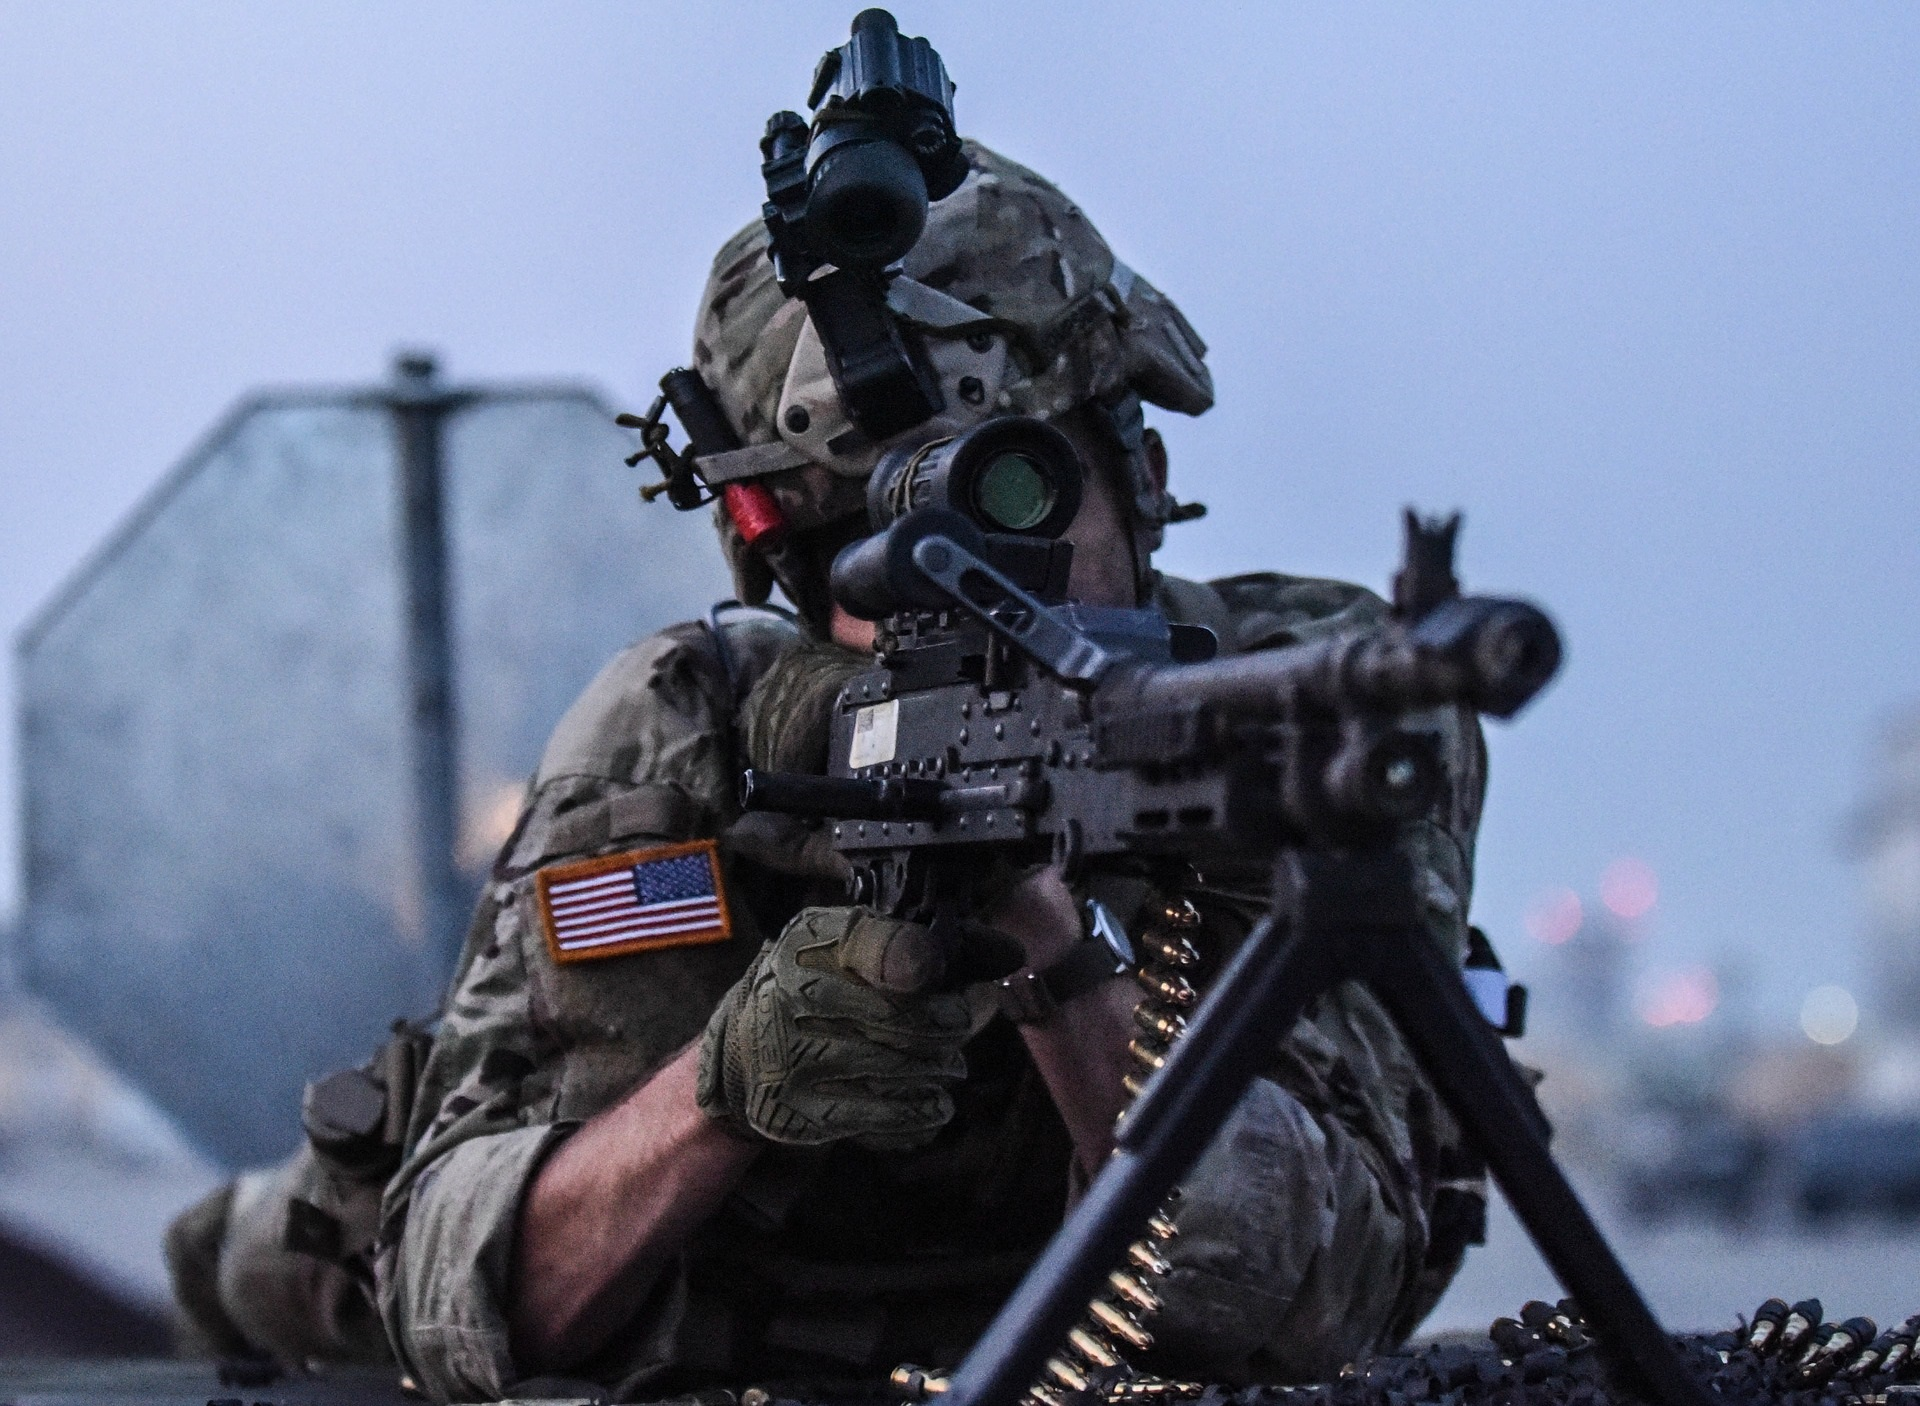 united-states-army-soldier-2528050_1920.jpg